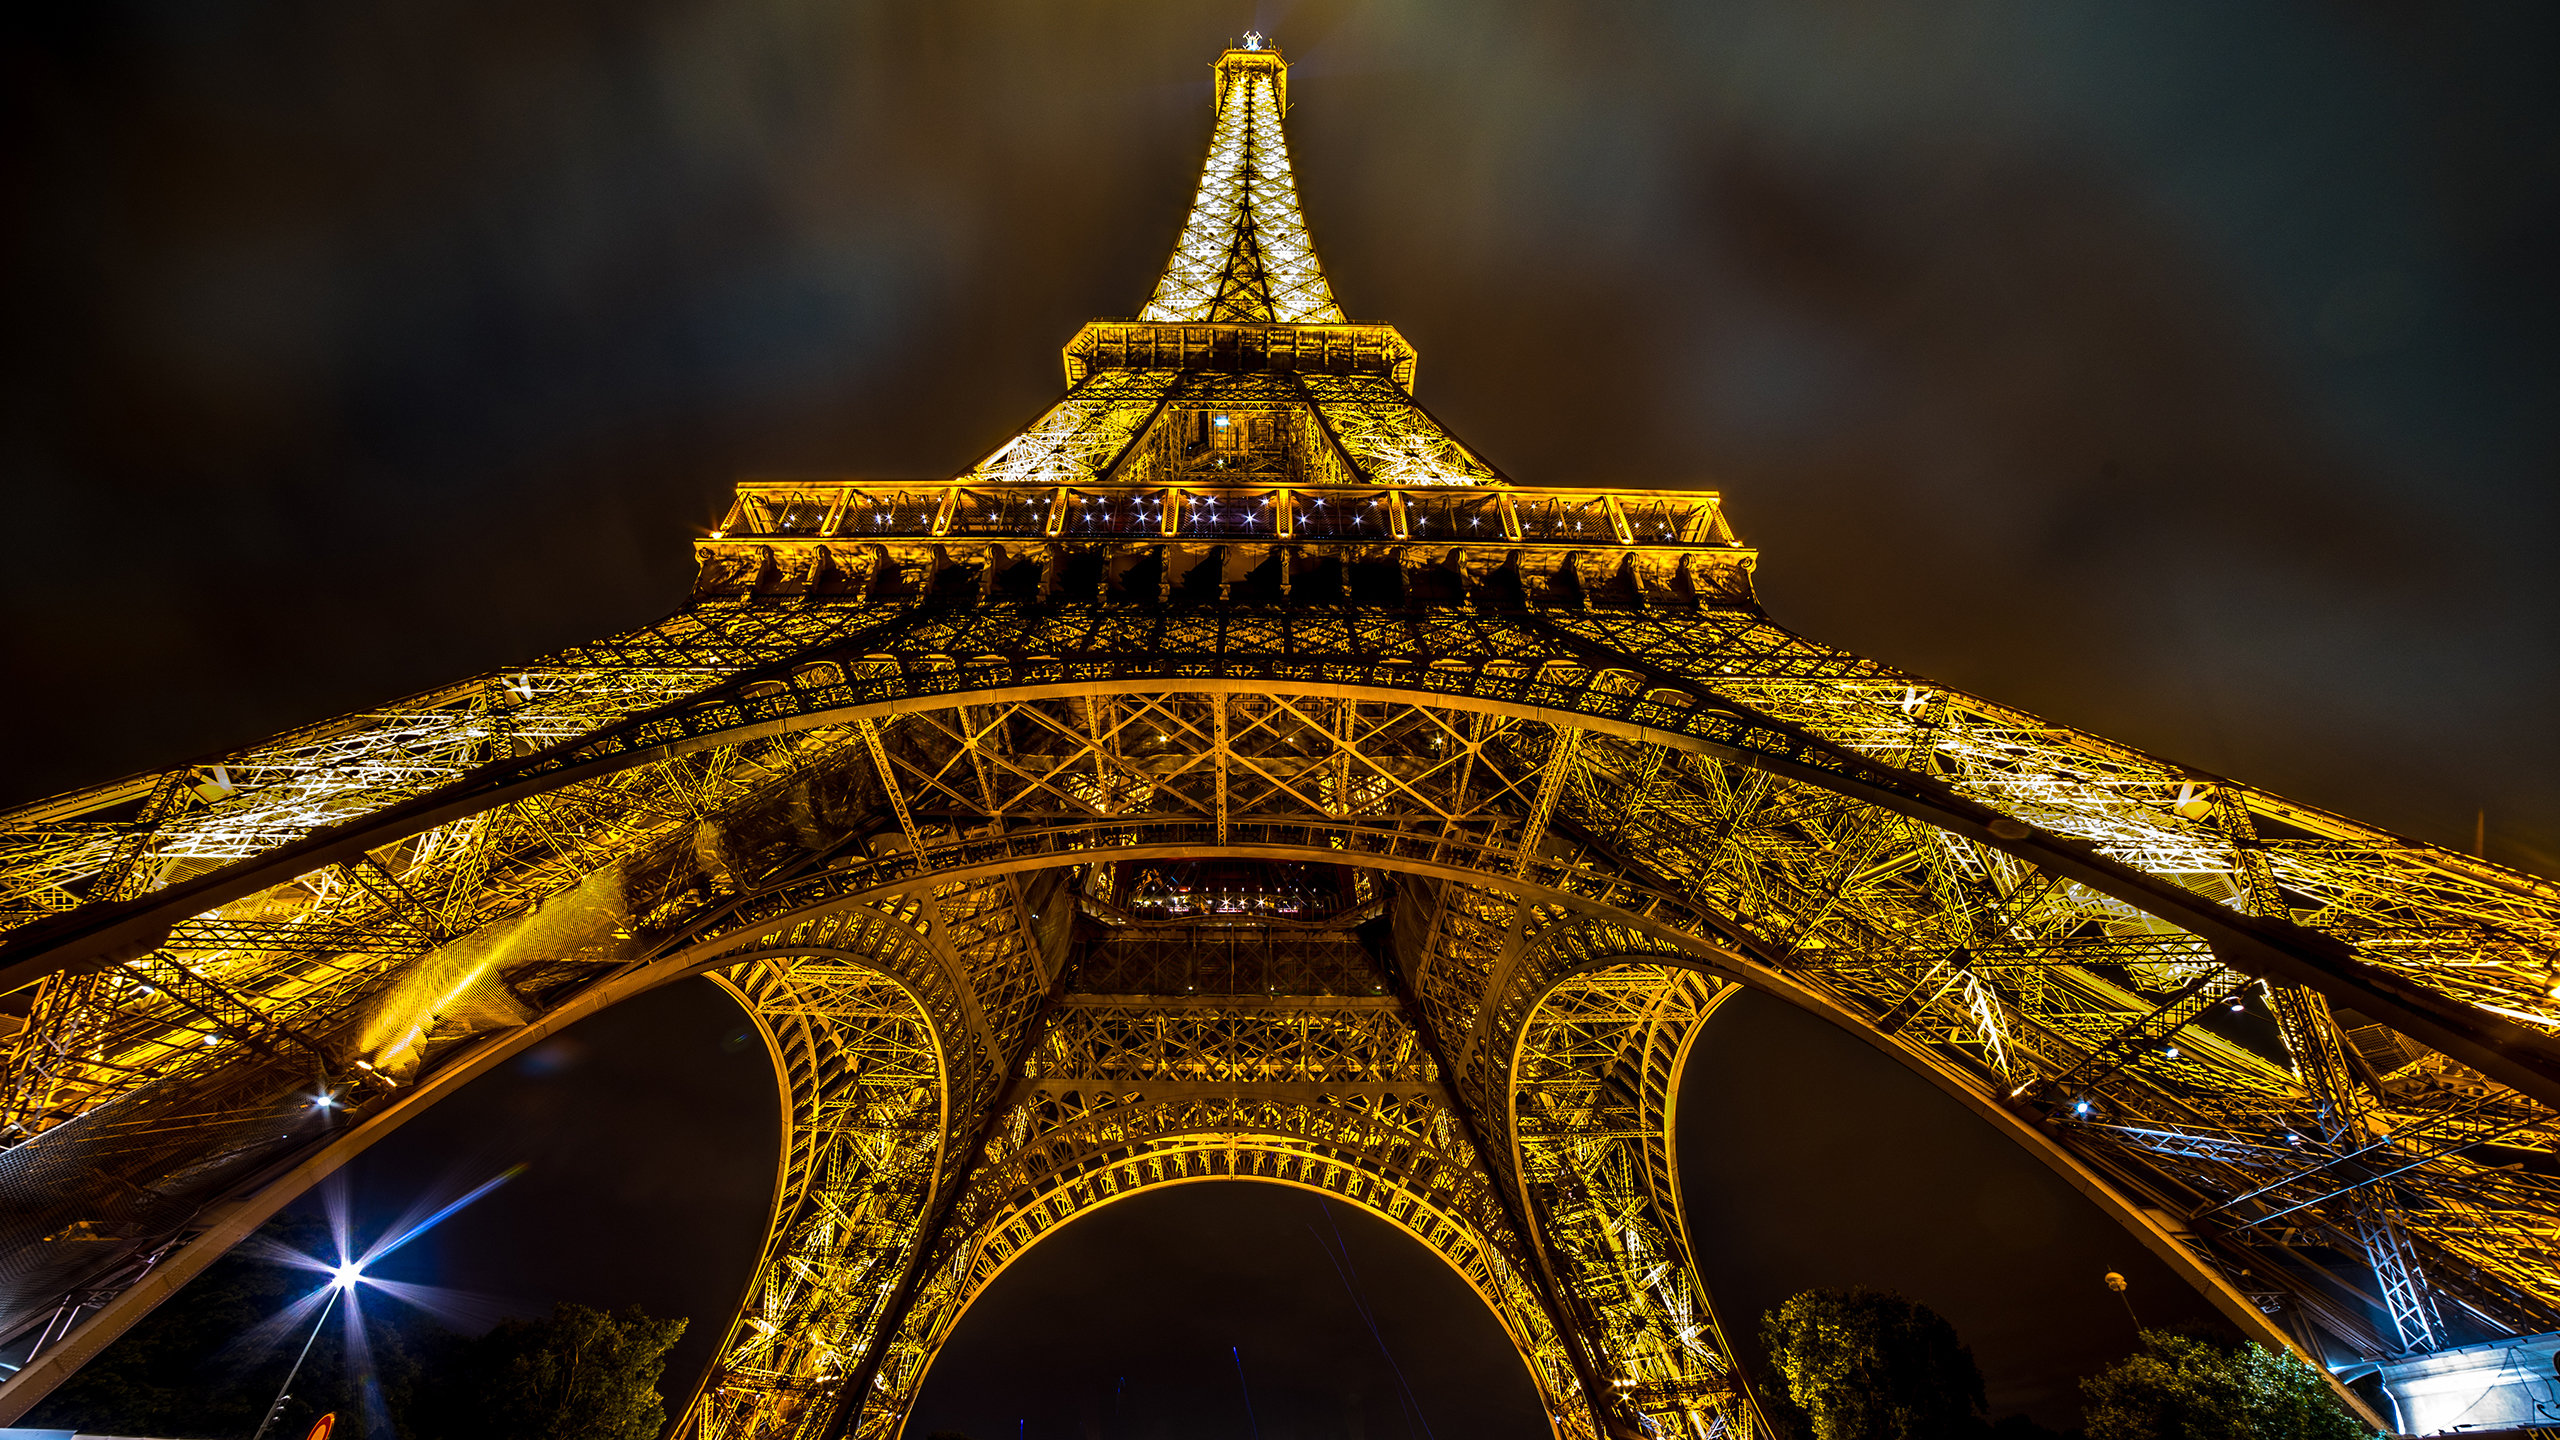 Eiffel Tower Wallpapers 2560x1440 Desktop Backgrounds